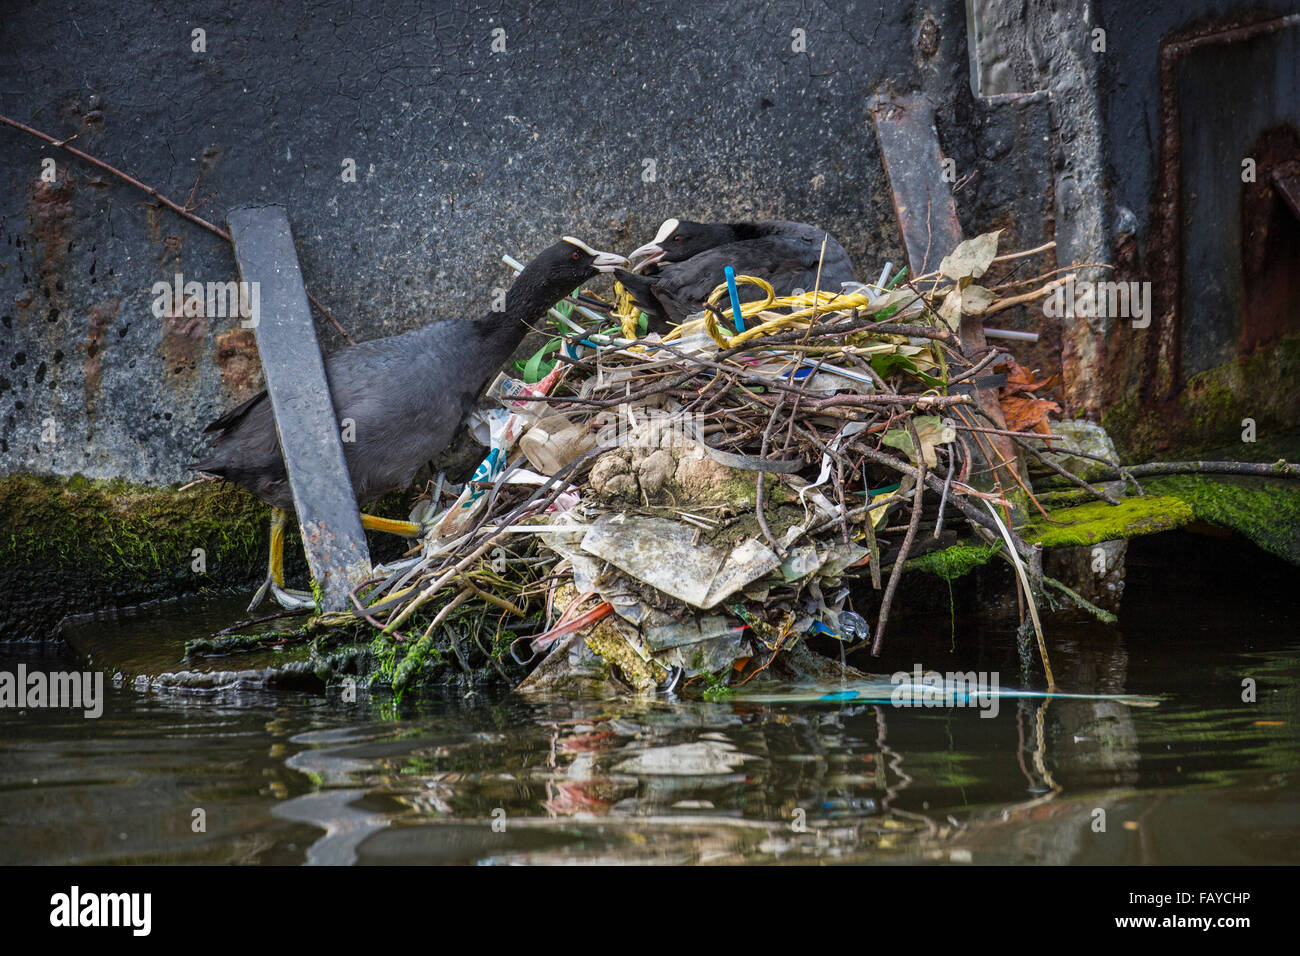 Netherlands, Amsterdam, Coots on nest in canal in city center near houseboat Stock Photo